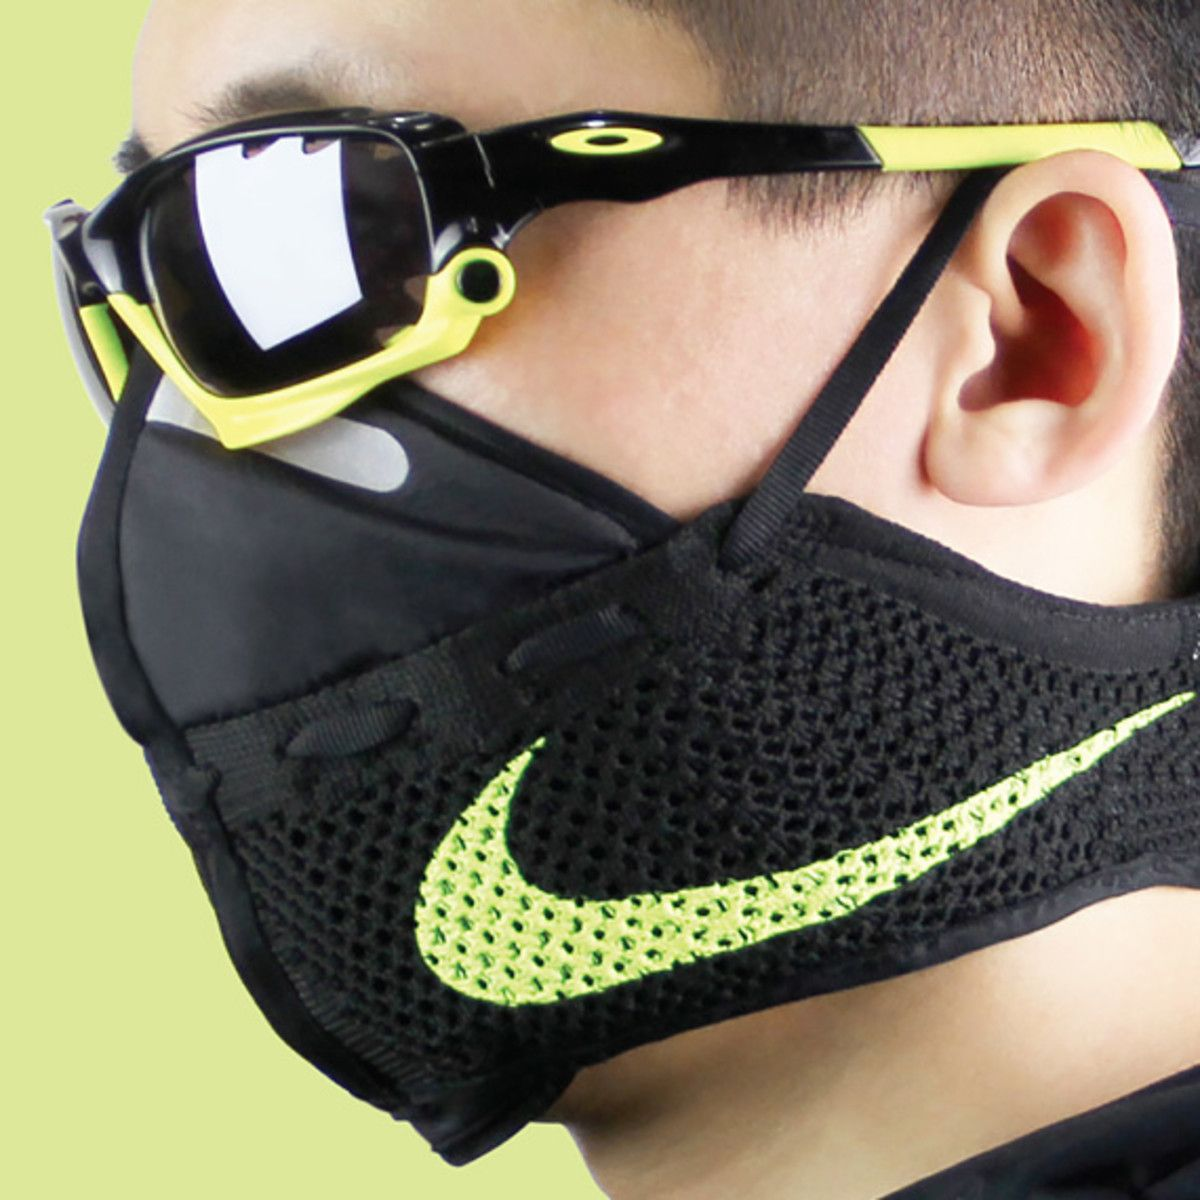 Nike Flyknit Mask by Zhijun Wang in 2020 (With images